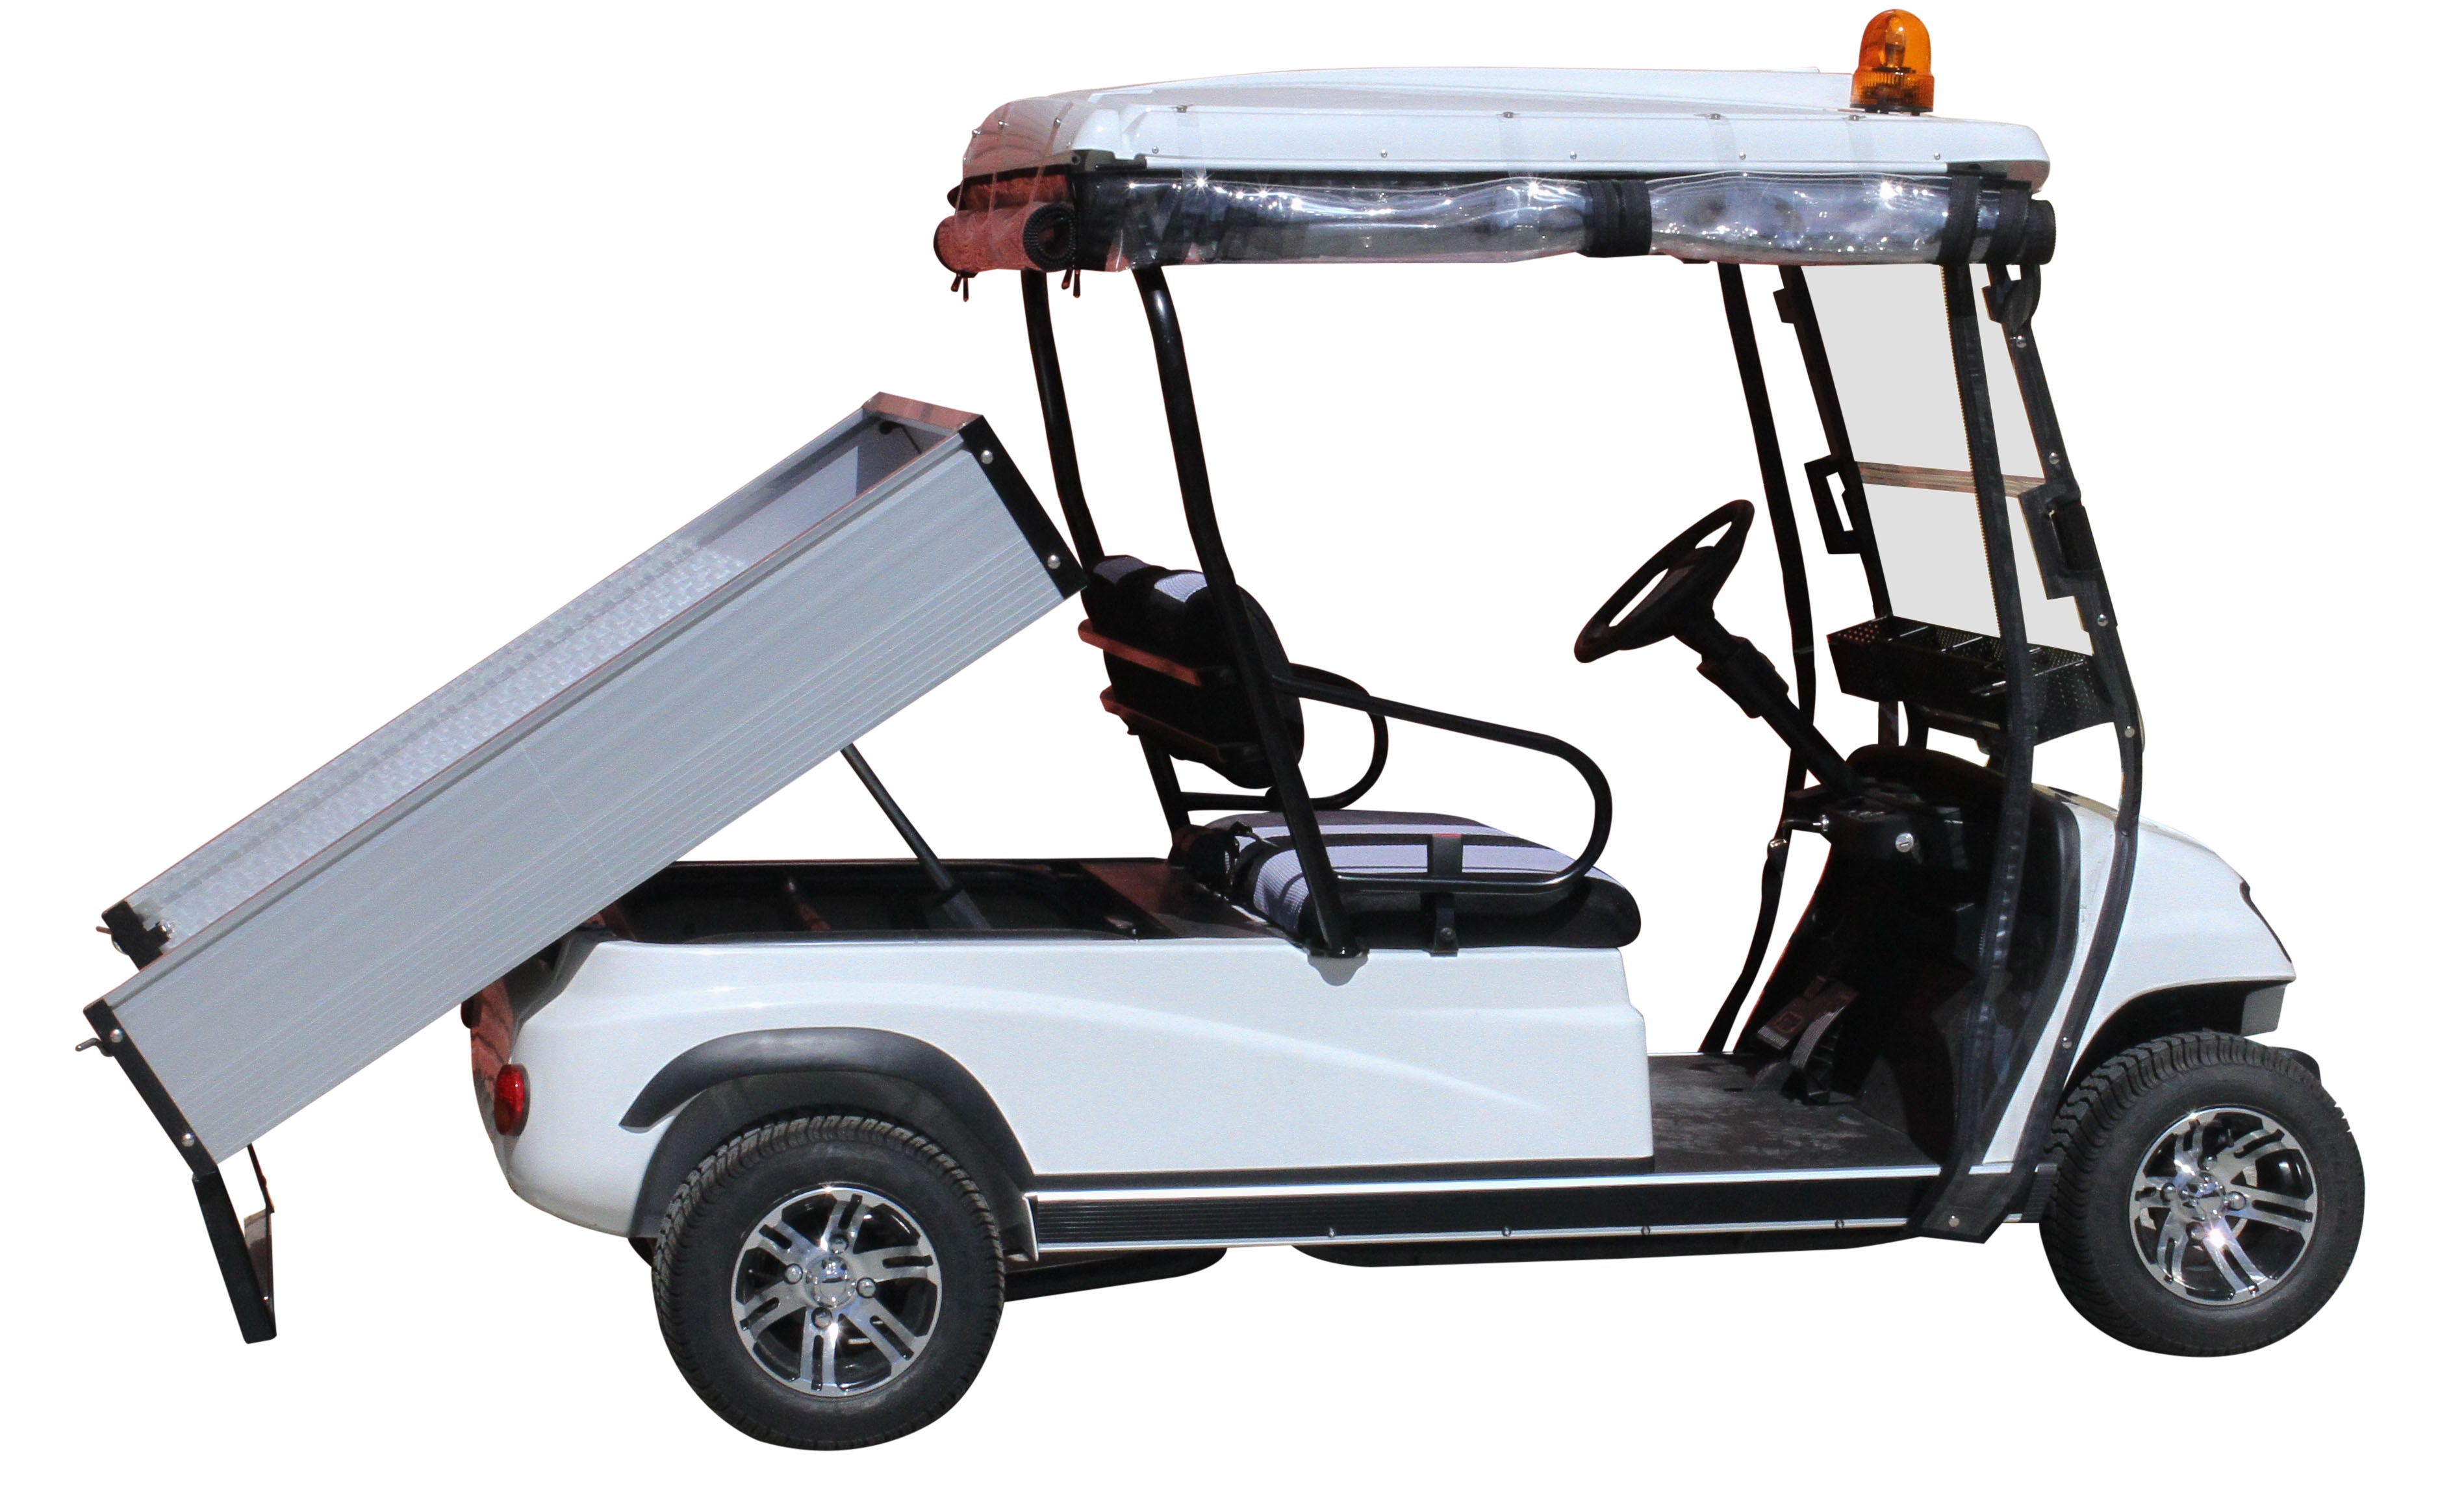 Tipper Tray White ECAR LT-A2.AH2 - 2 Seat Utility Electric Cart Buggy Rear Tray Transport